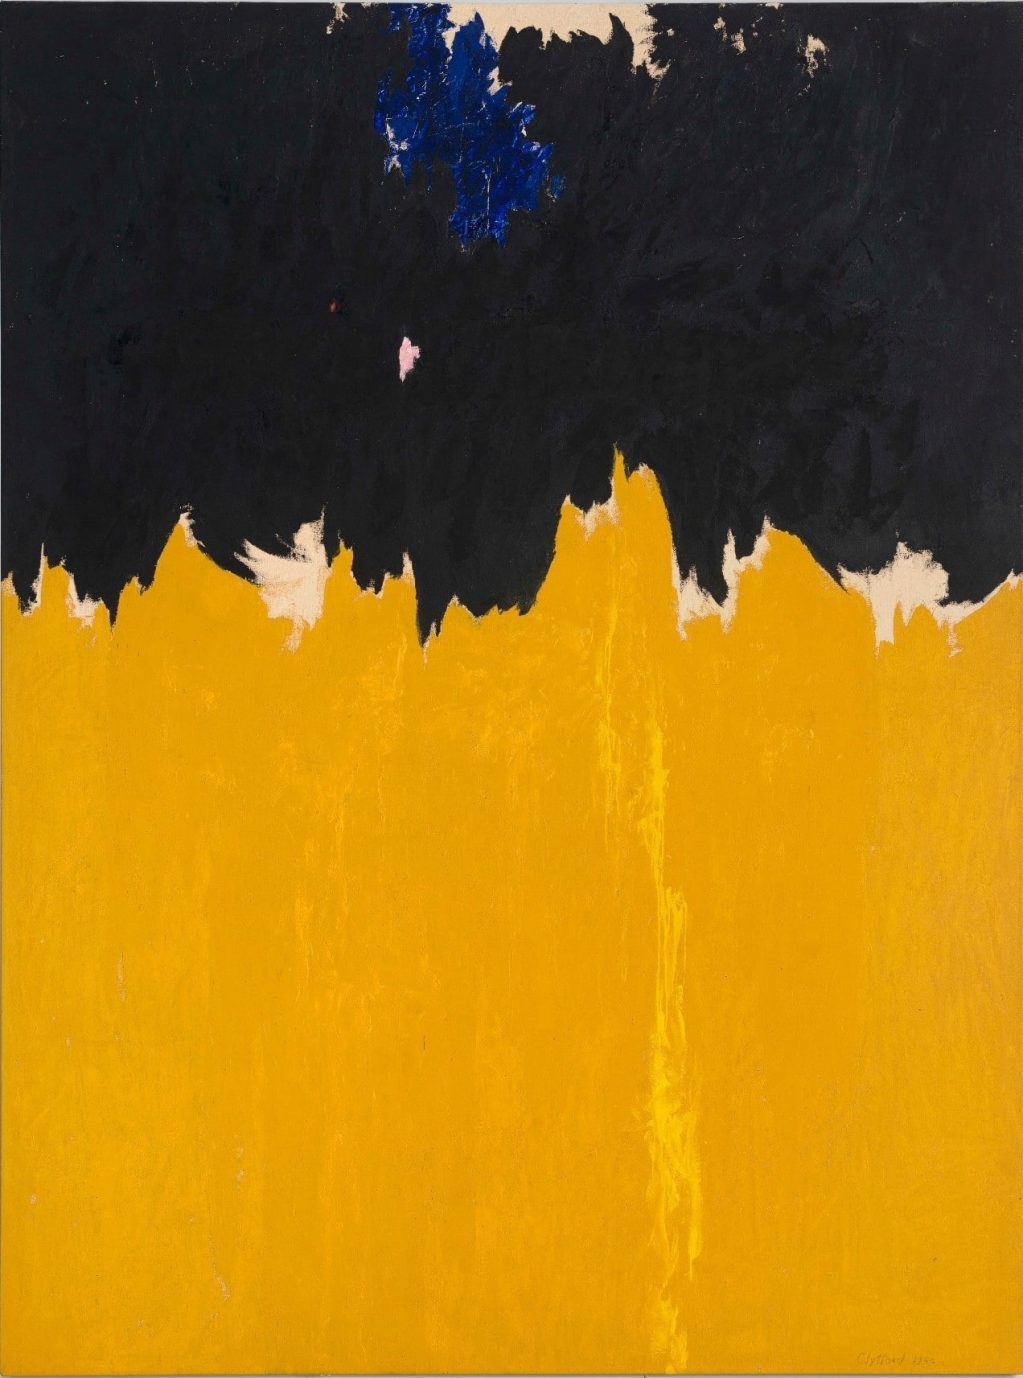 Clyfford Still, PH-950, 1950